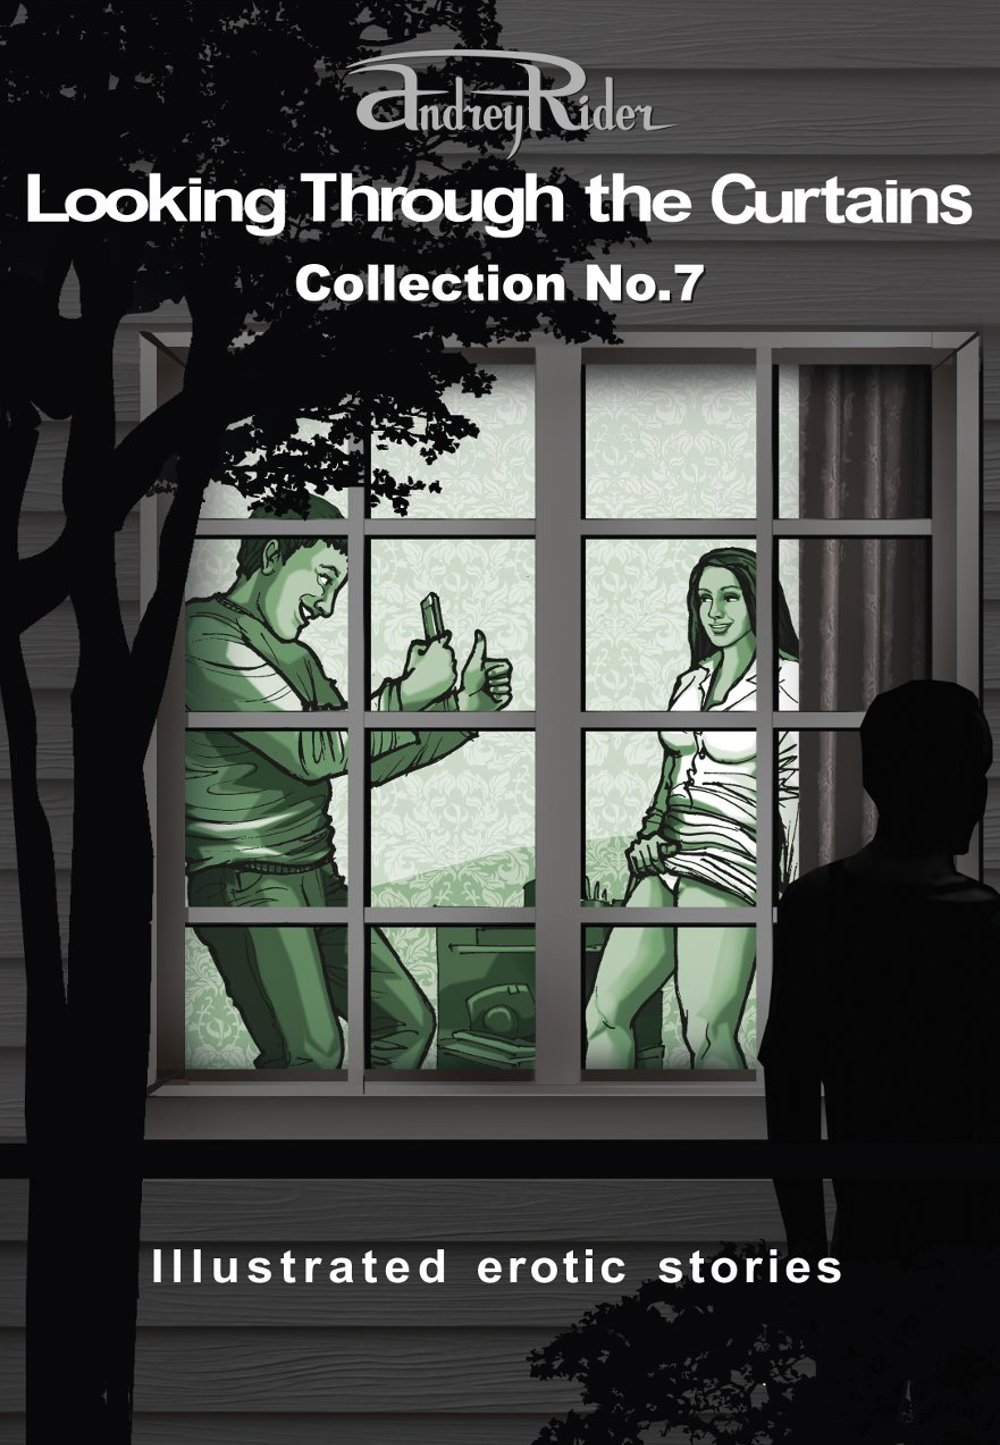 Collection of Erotic Stories No.7